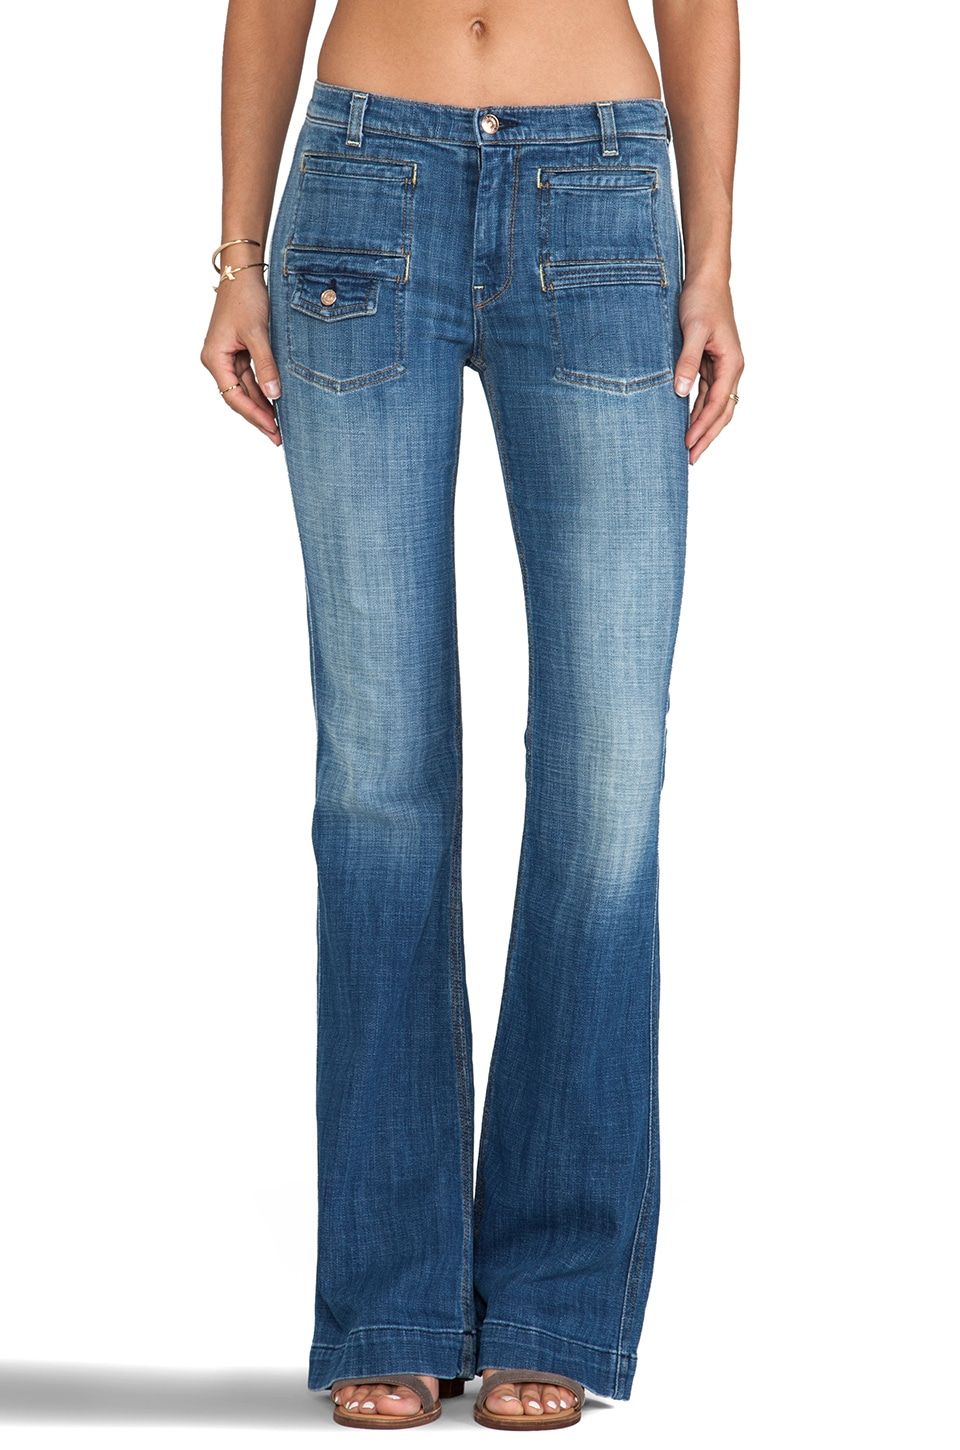 7 For All Mankind Georgia in Bright Light Broken Twill